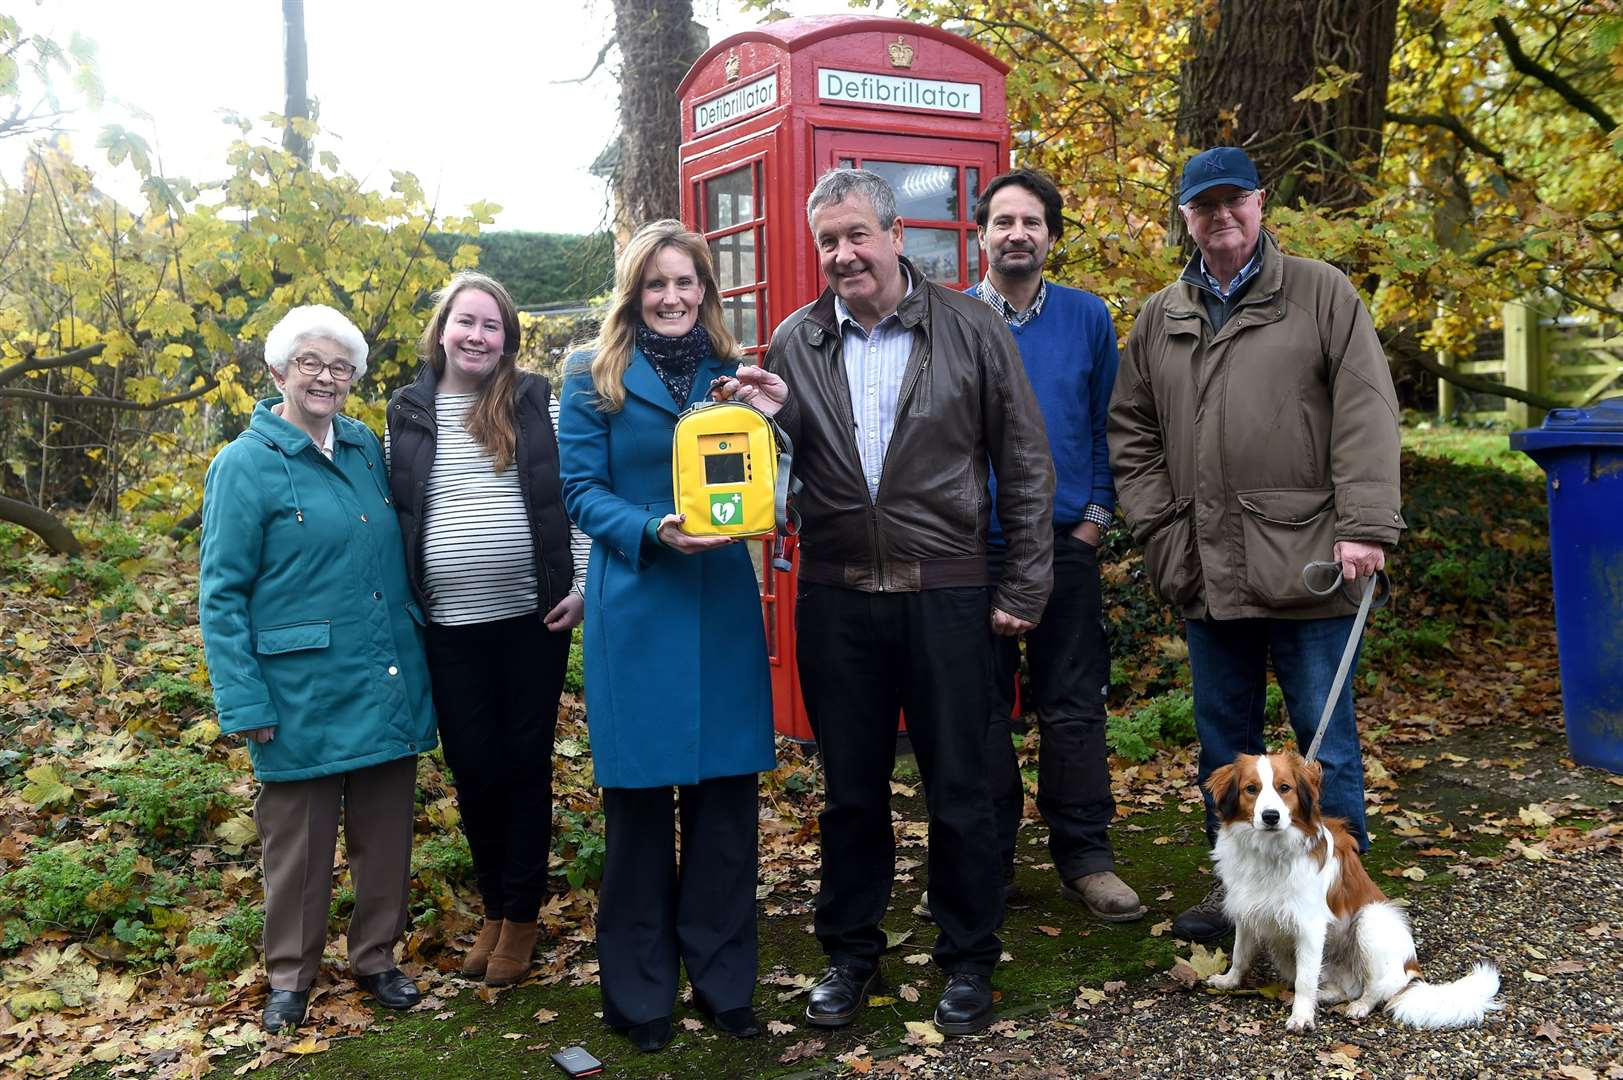 A red telephone box in Hawstead has ben converted into house defibrillator..Pictured: Ethel Lebbon (resident), Lucy Brewis (resident), County Cllr Karen Soons, Parish Cllr Henry Brewis, Clive Robinson (Resident) and John West (Chairman of Parish Cllr)...PICTURE: Mecha Morton .... (21938949)